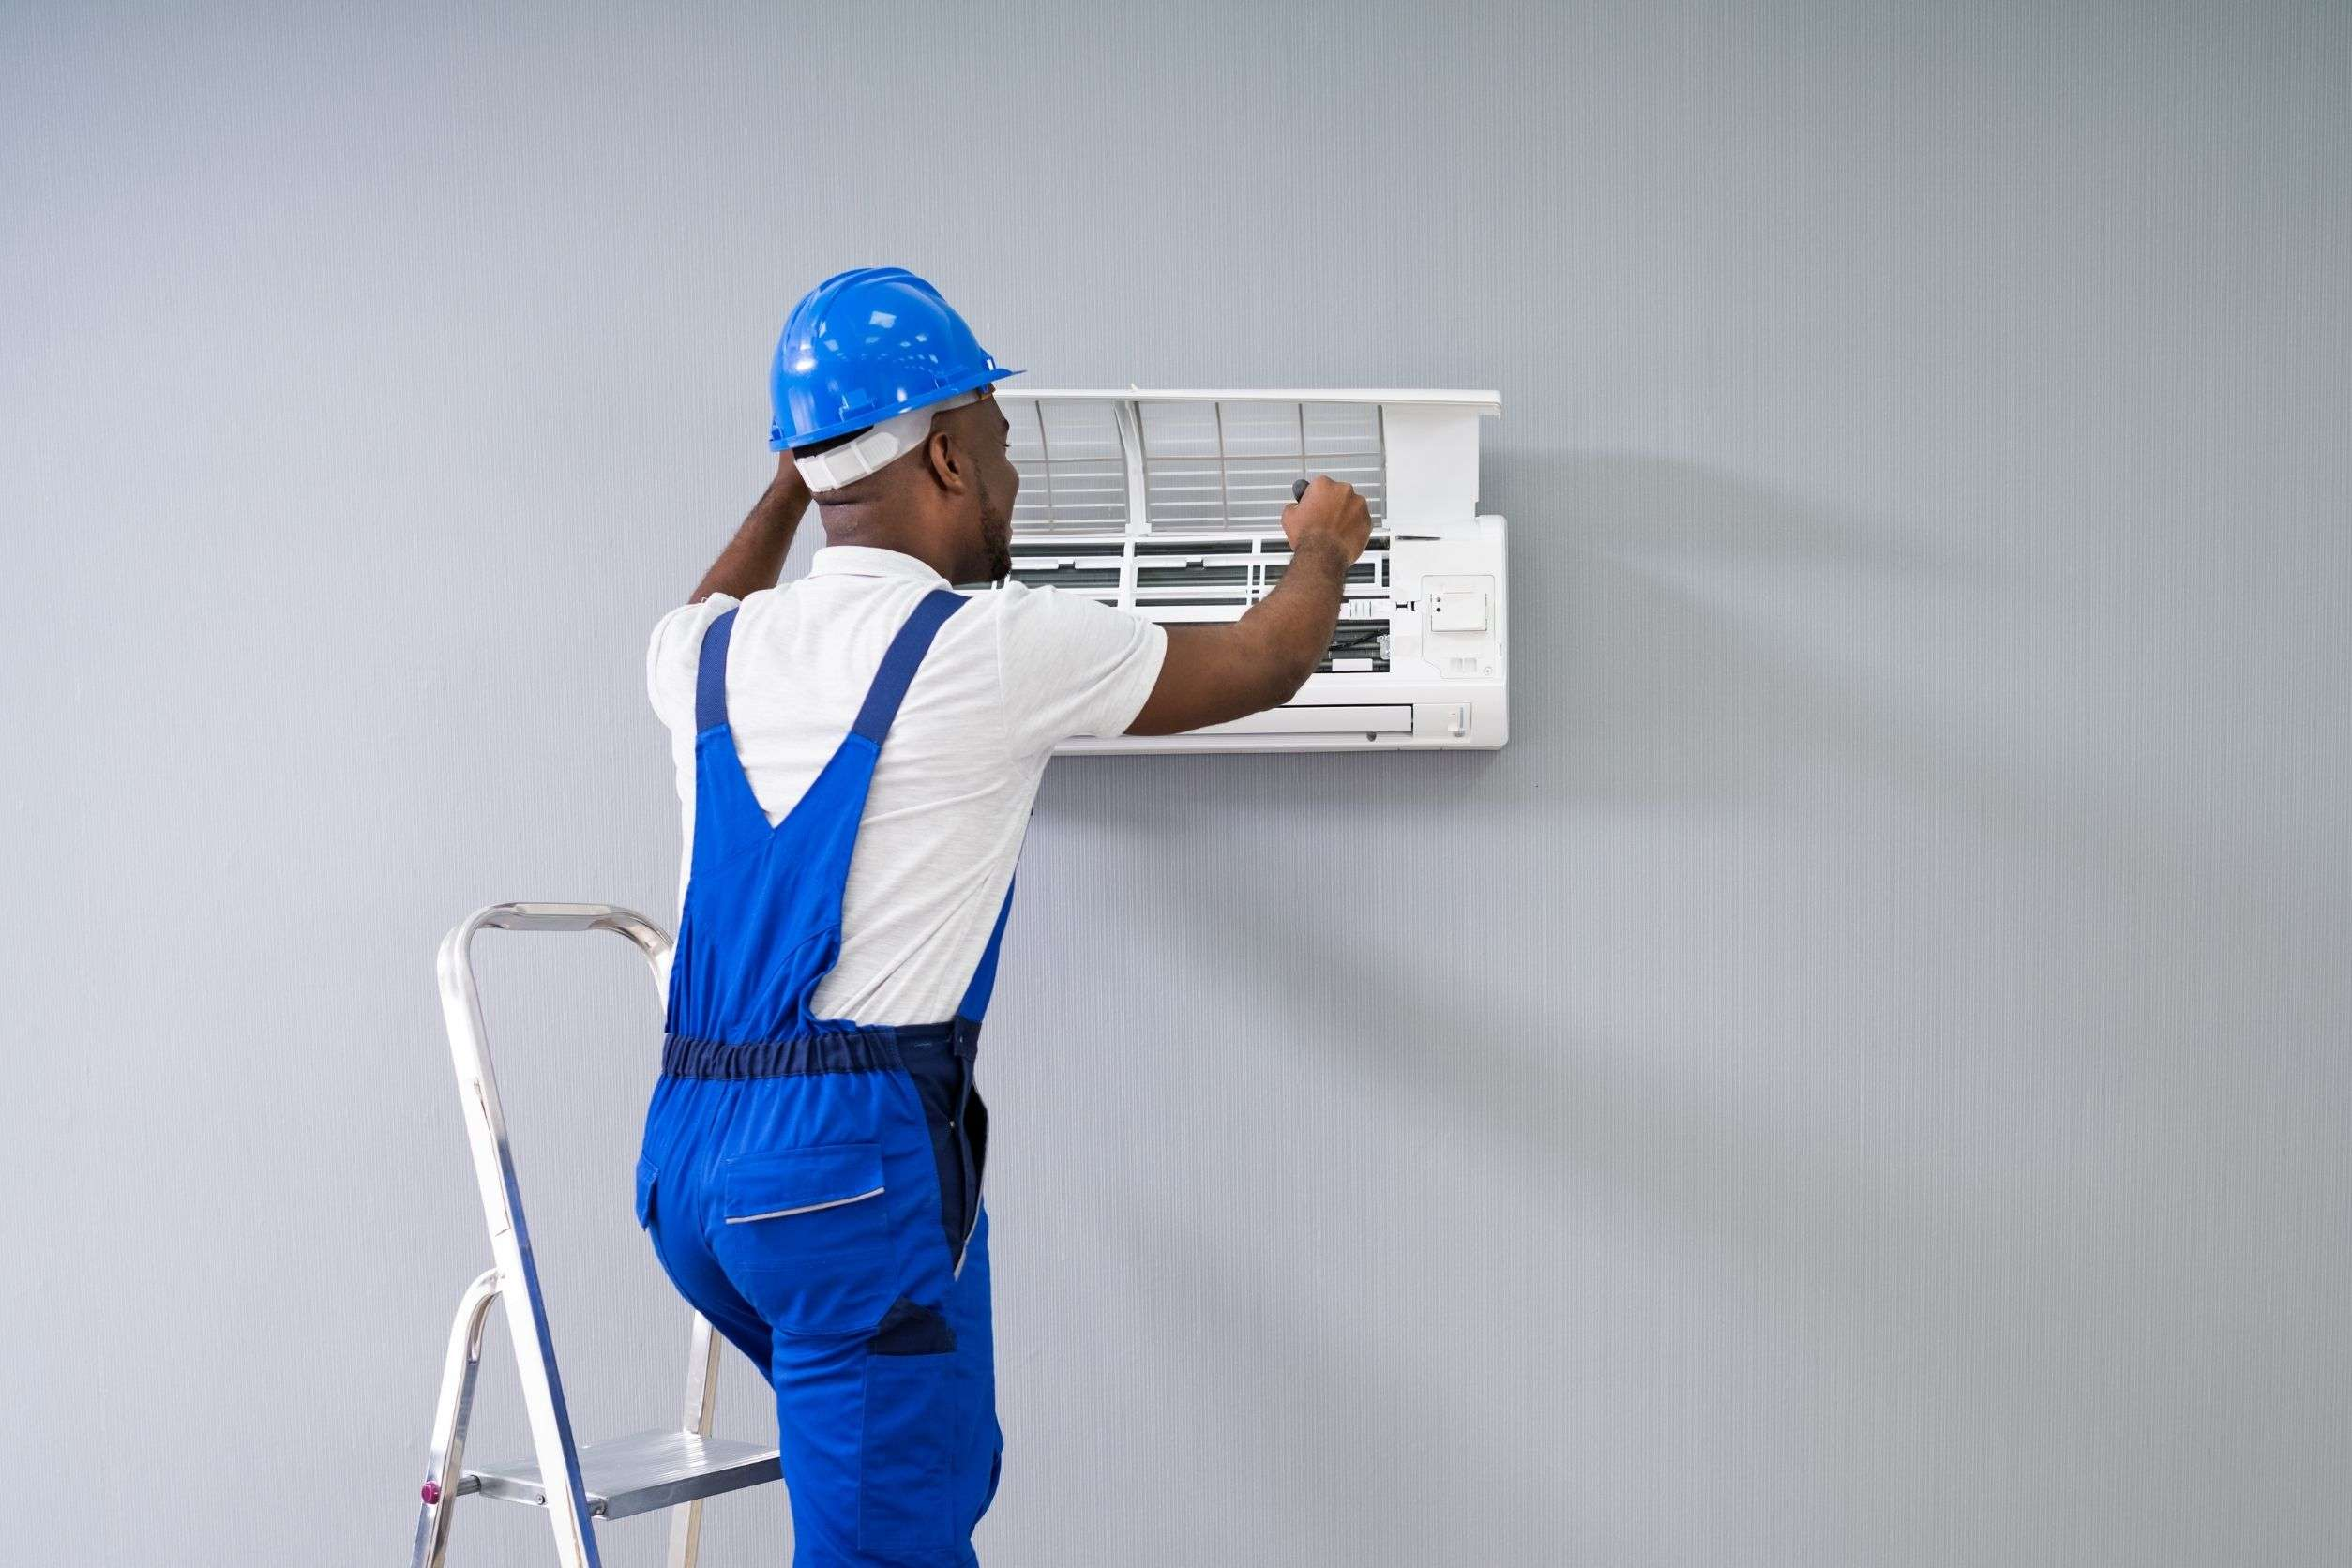 tech from HVAC company working on AC unit